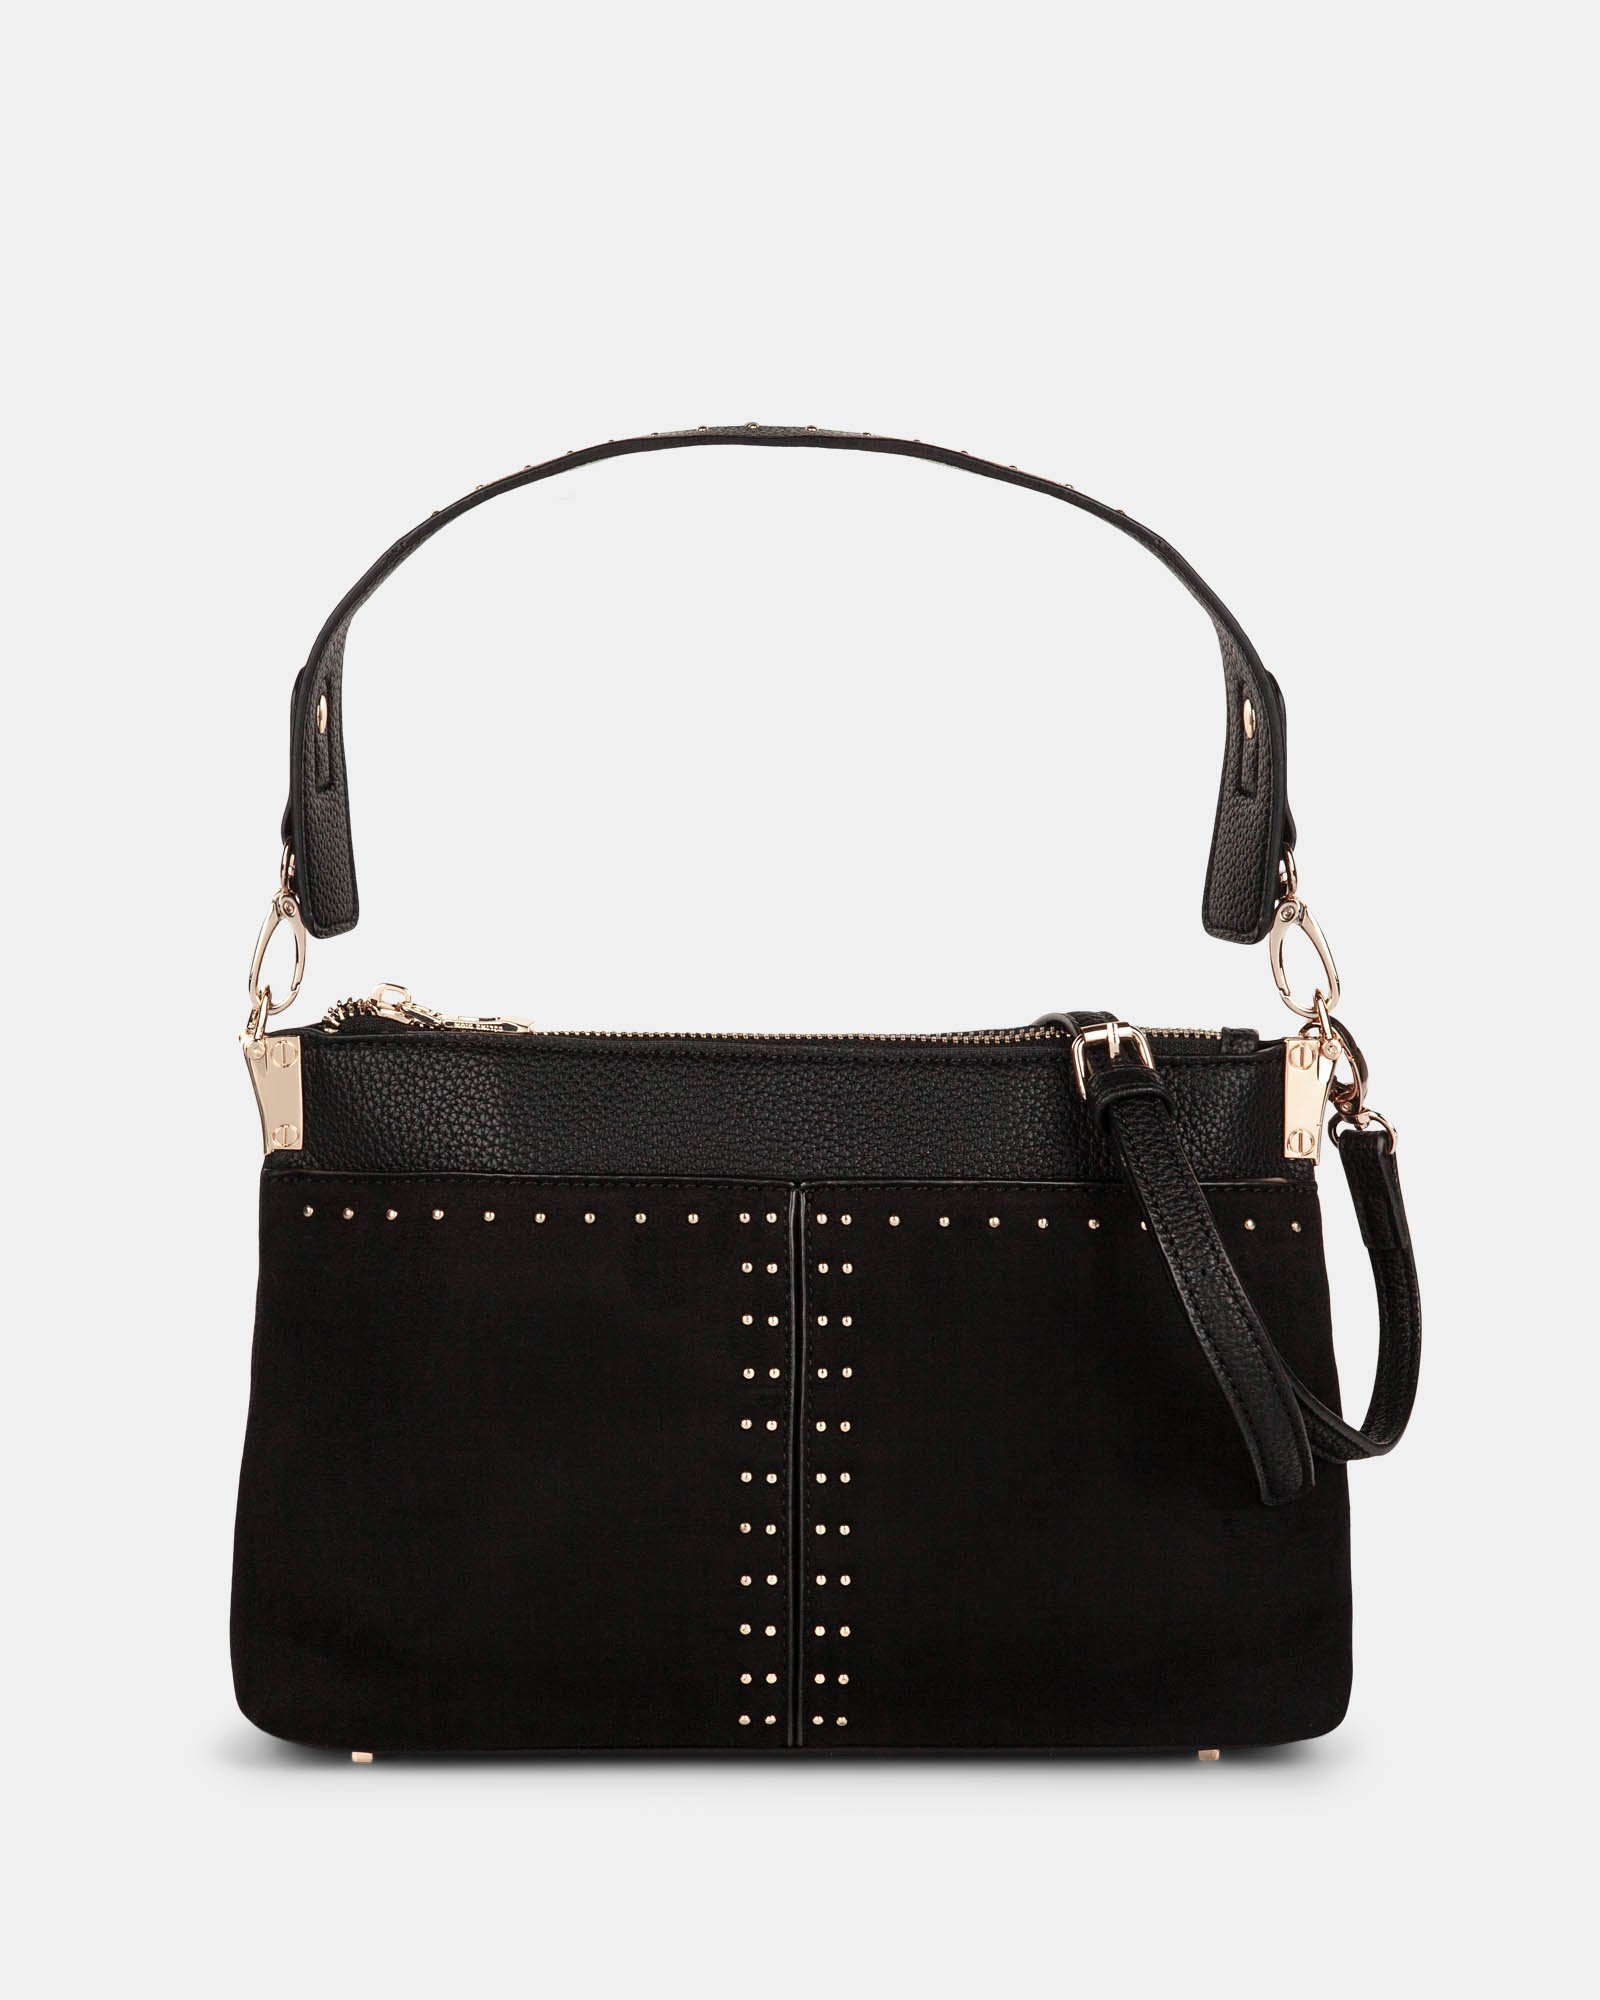 HARMONY - CLUTCH converted to a small shoulder bag - Black - Céline Dion - Zoom